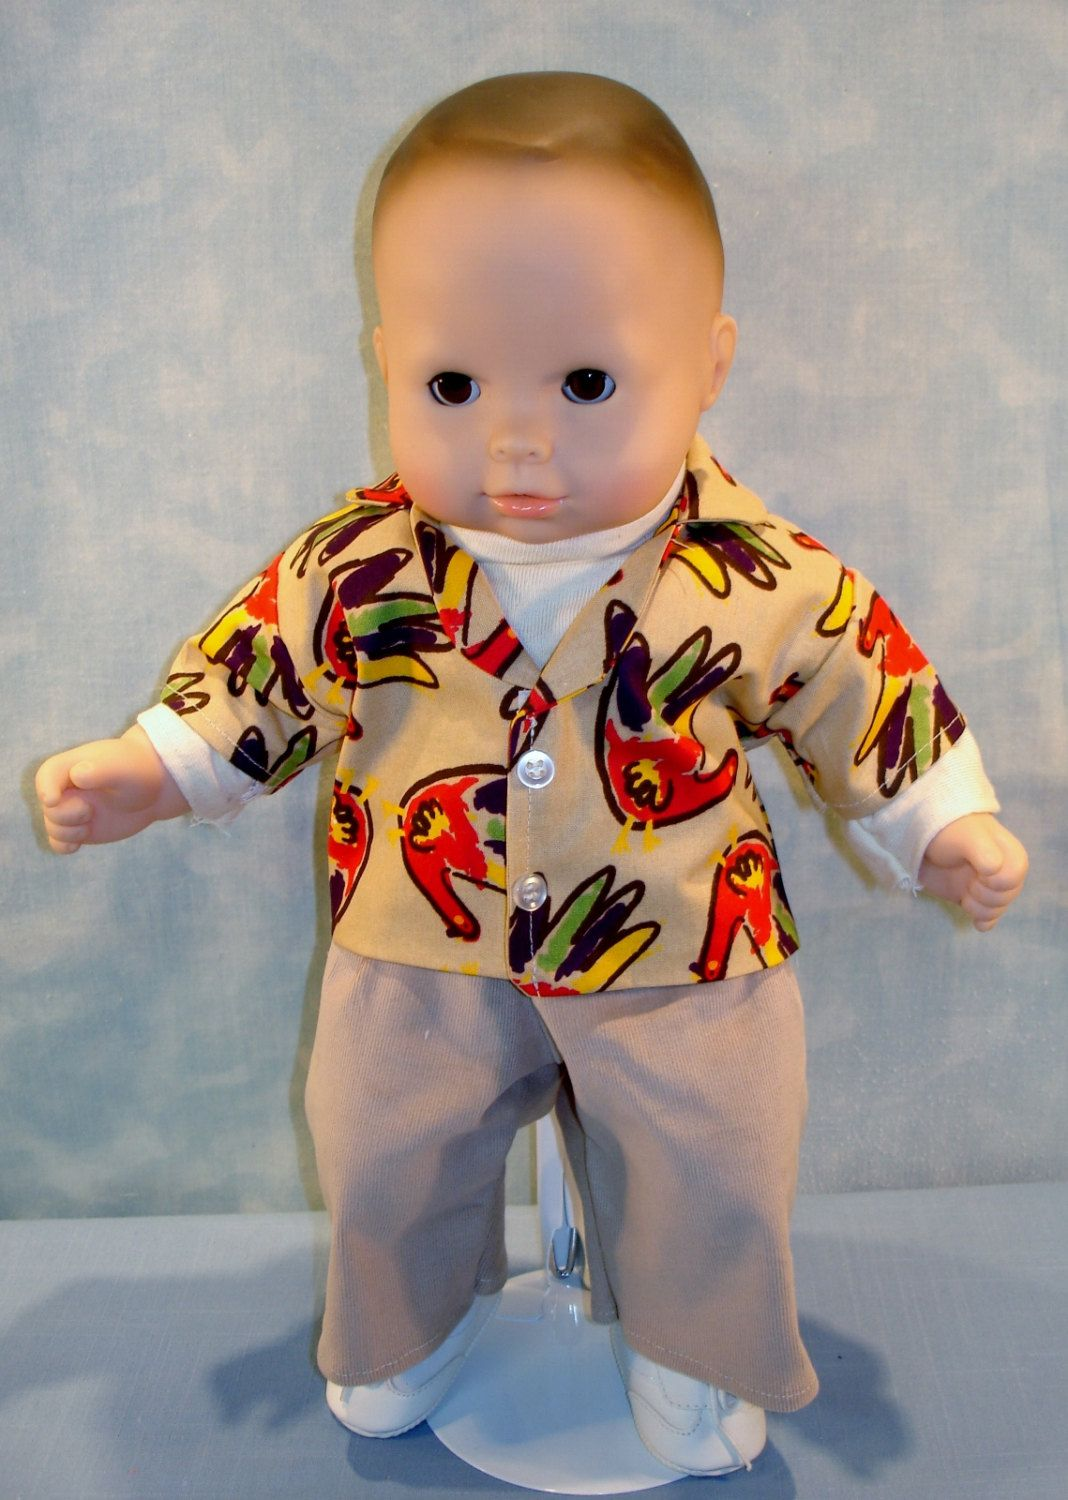 15 Inch Doll Clothes Boy Doll Thanksgiving Turkey Shirt Etsy Boy Outfits Doll Clothes Bitty Baby Clothes